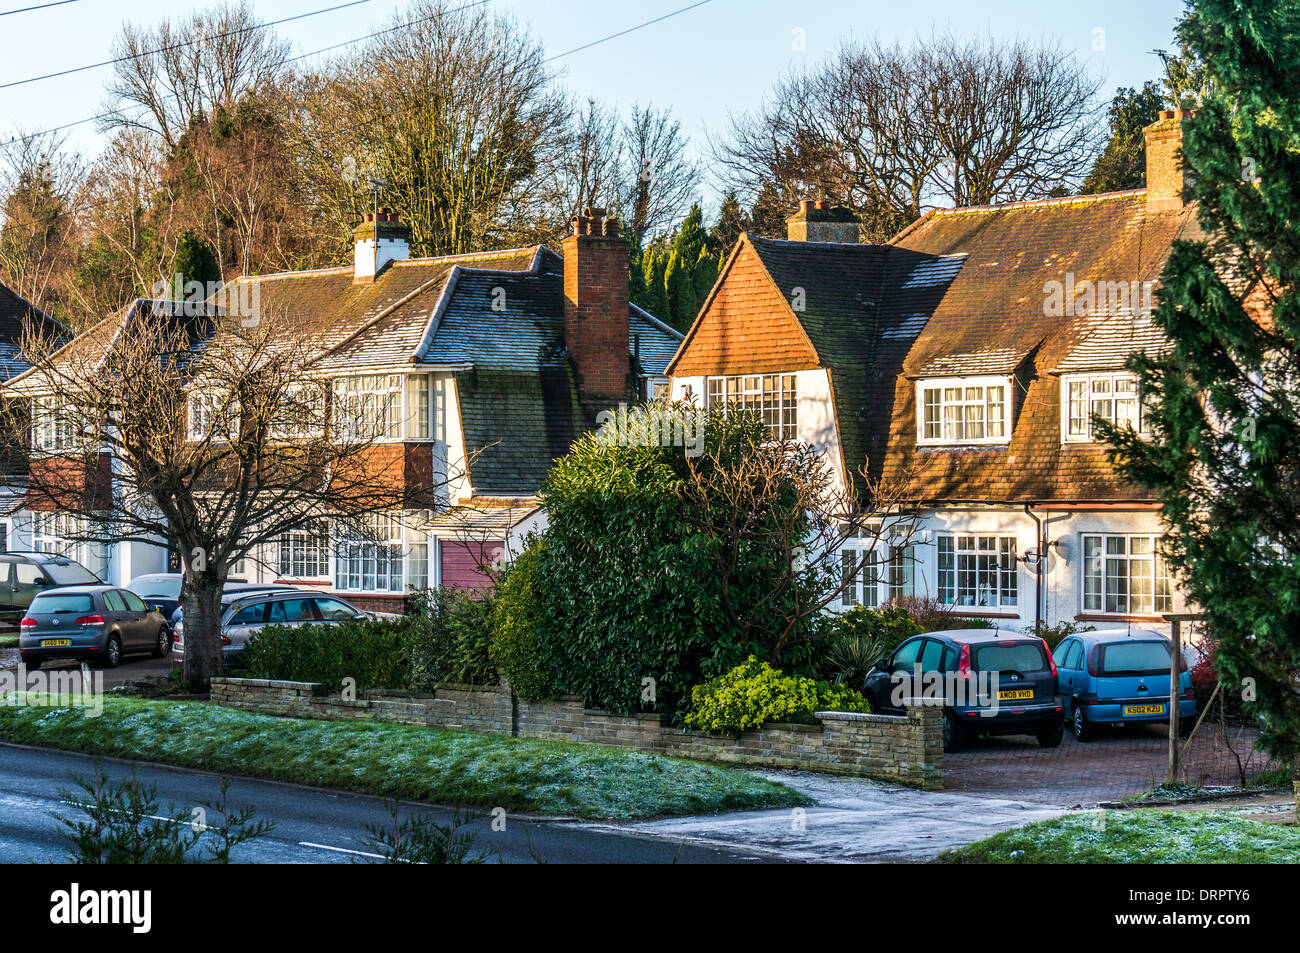 In outer London, a row of traditional 1930s houses, on a frosty winter morning, bathed in sunshine, in Epsom, Surrey, England, UK. - Stock Image